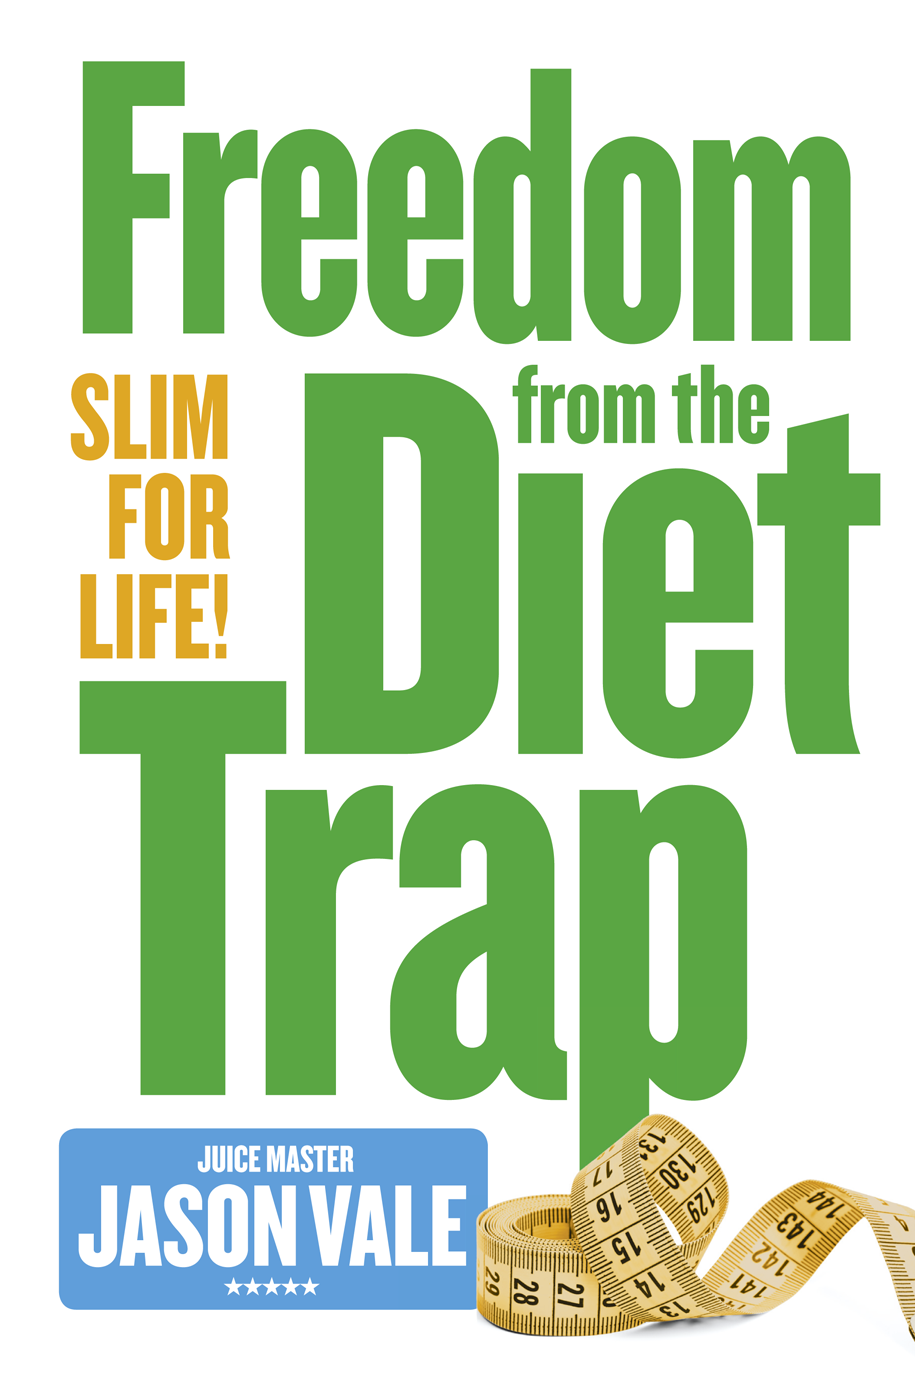 Jason Vale - Freedom from the Diet Trap: Slim for Life